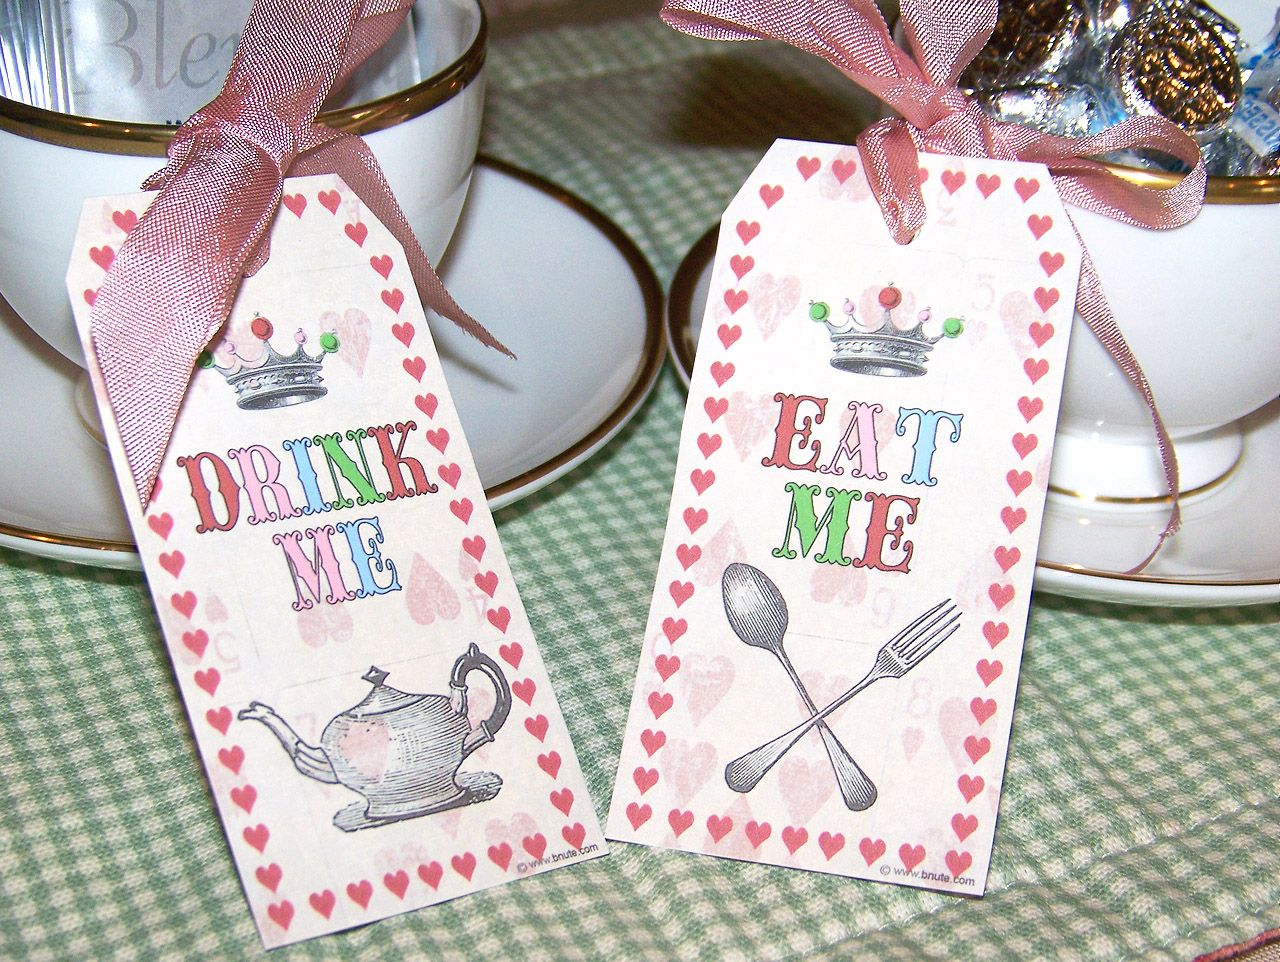 Mad hatter tea party decoration ideas - Mad Hatter Tea Party Labels